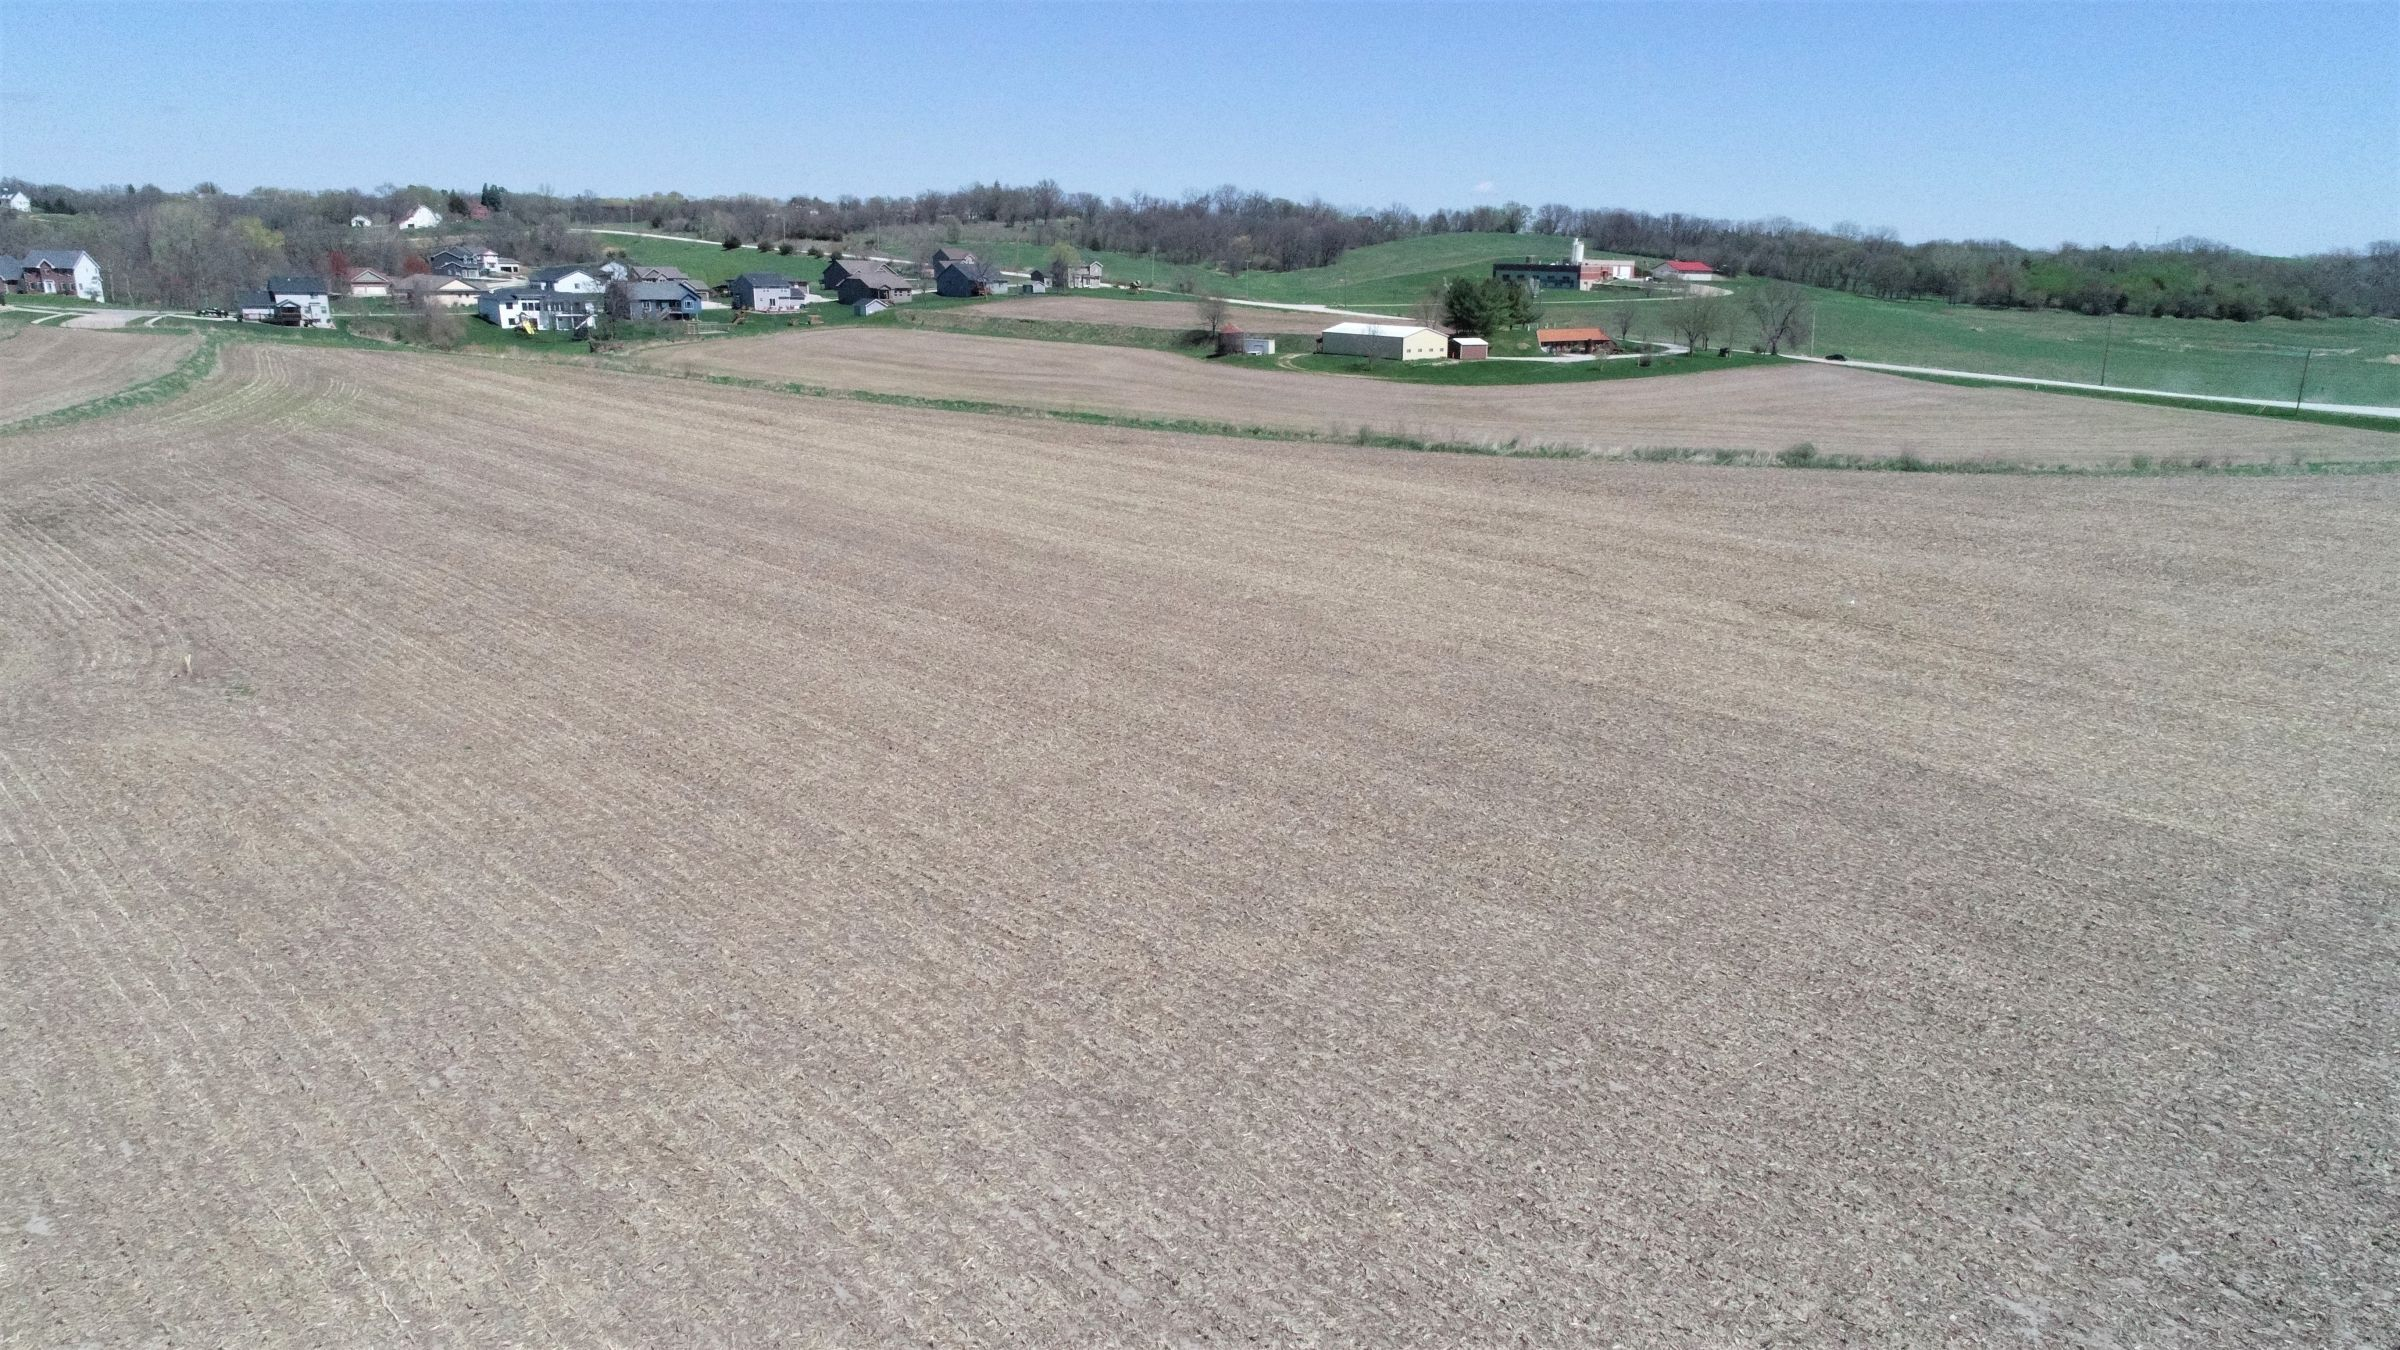 development-land-warren-county-iowa-80-acres-listing-number-15464-1-2021-04-15-232814.JPG